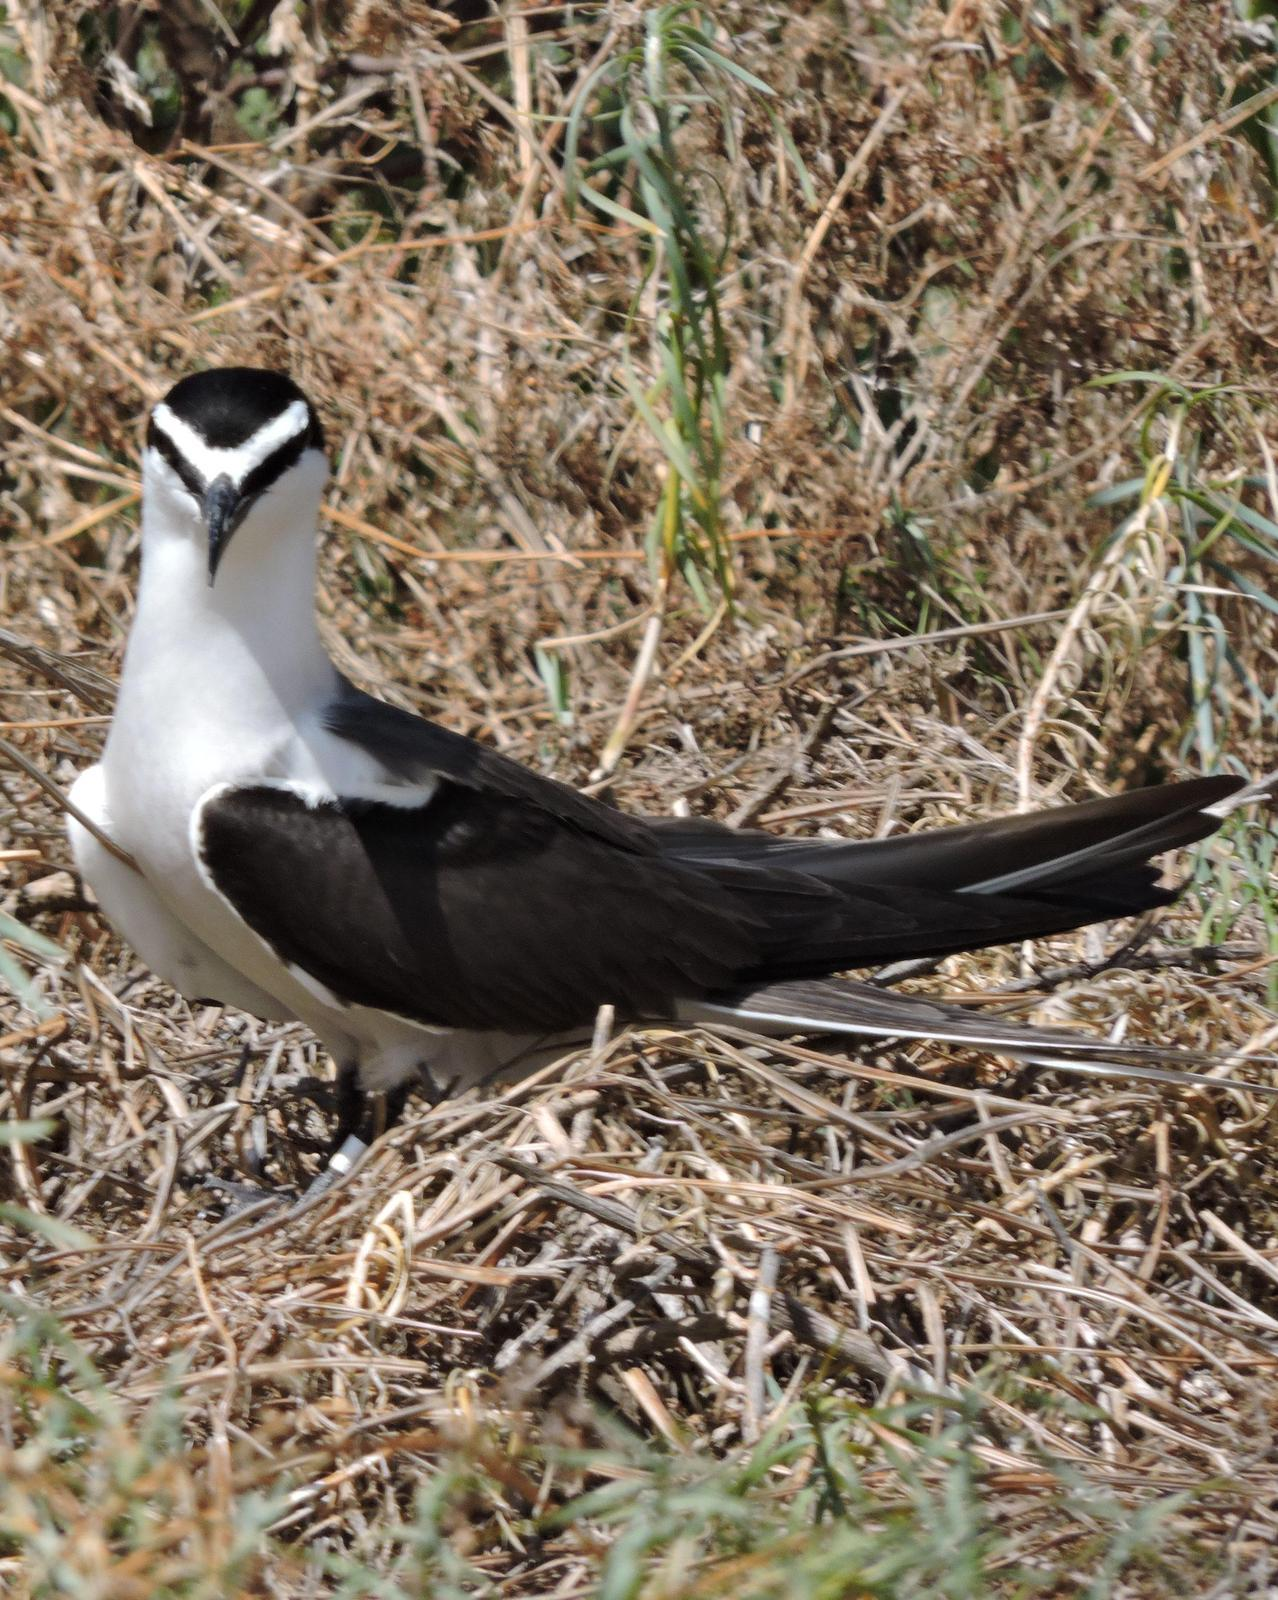 Bridled Tern Photo by Peter Lowe